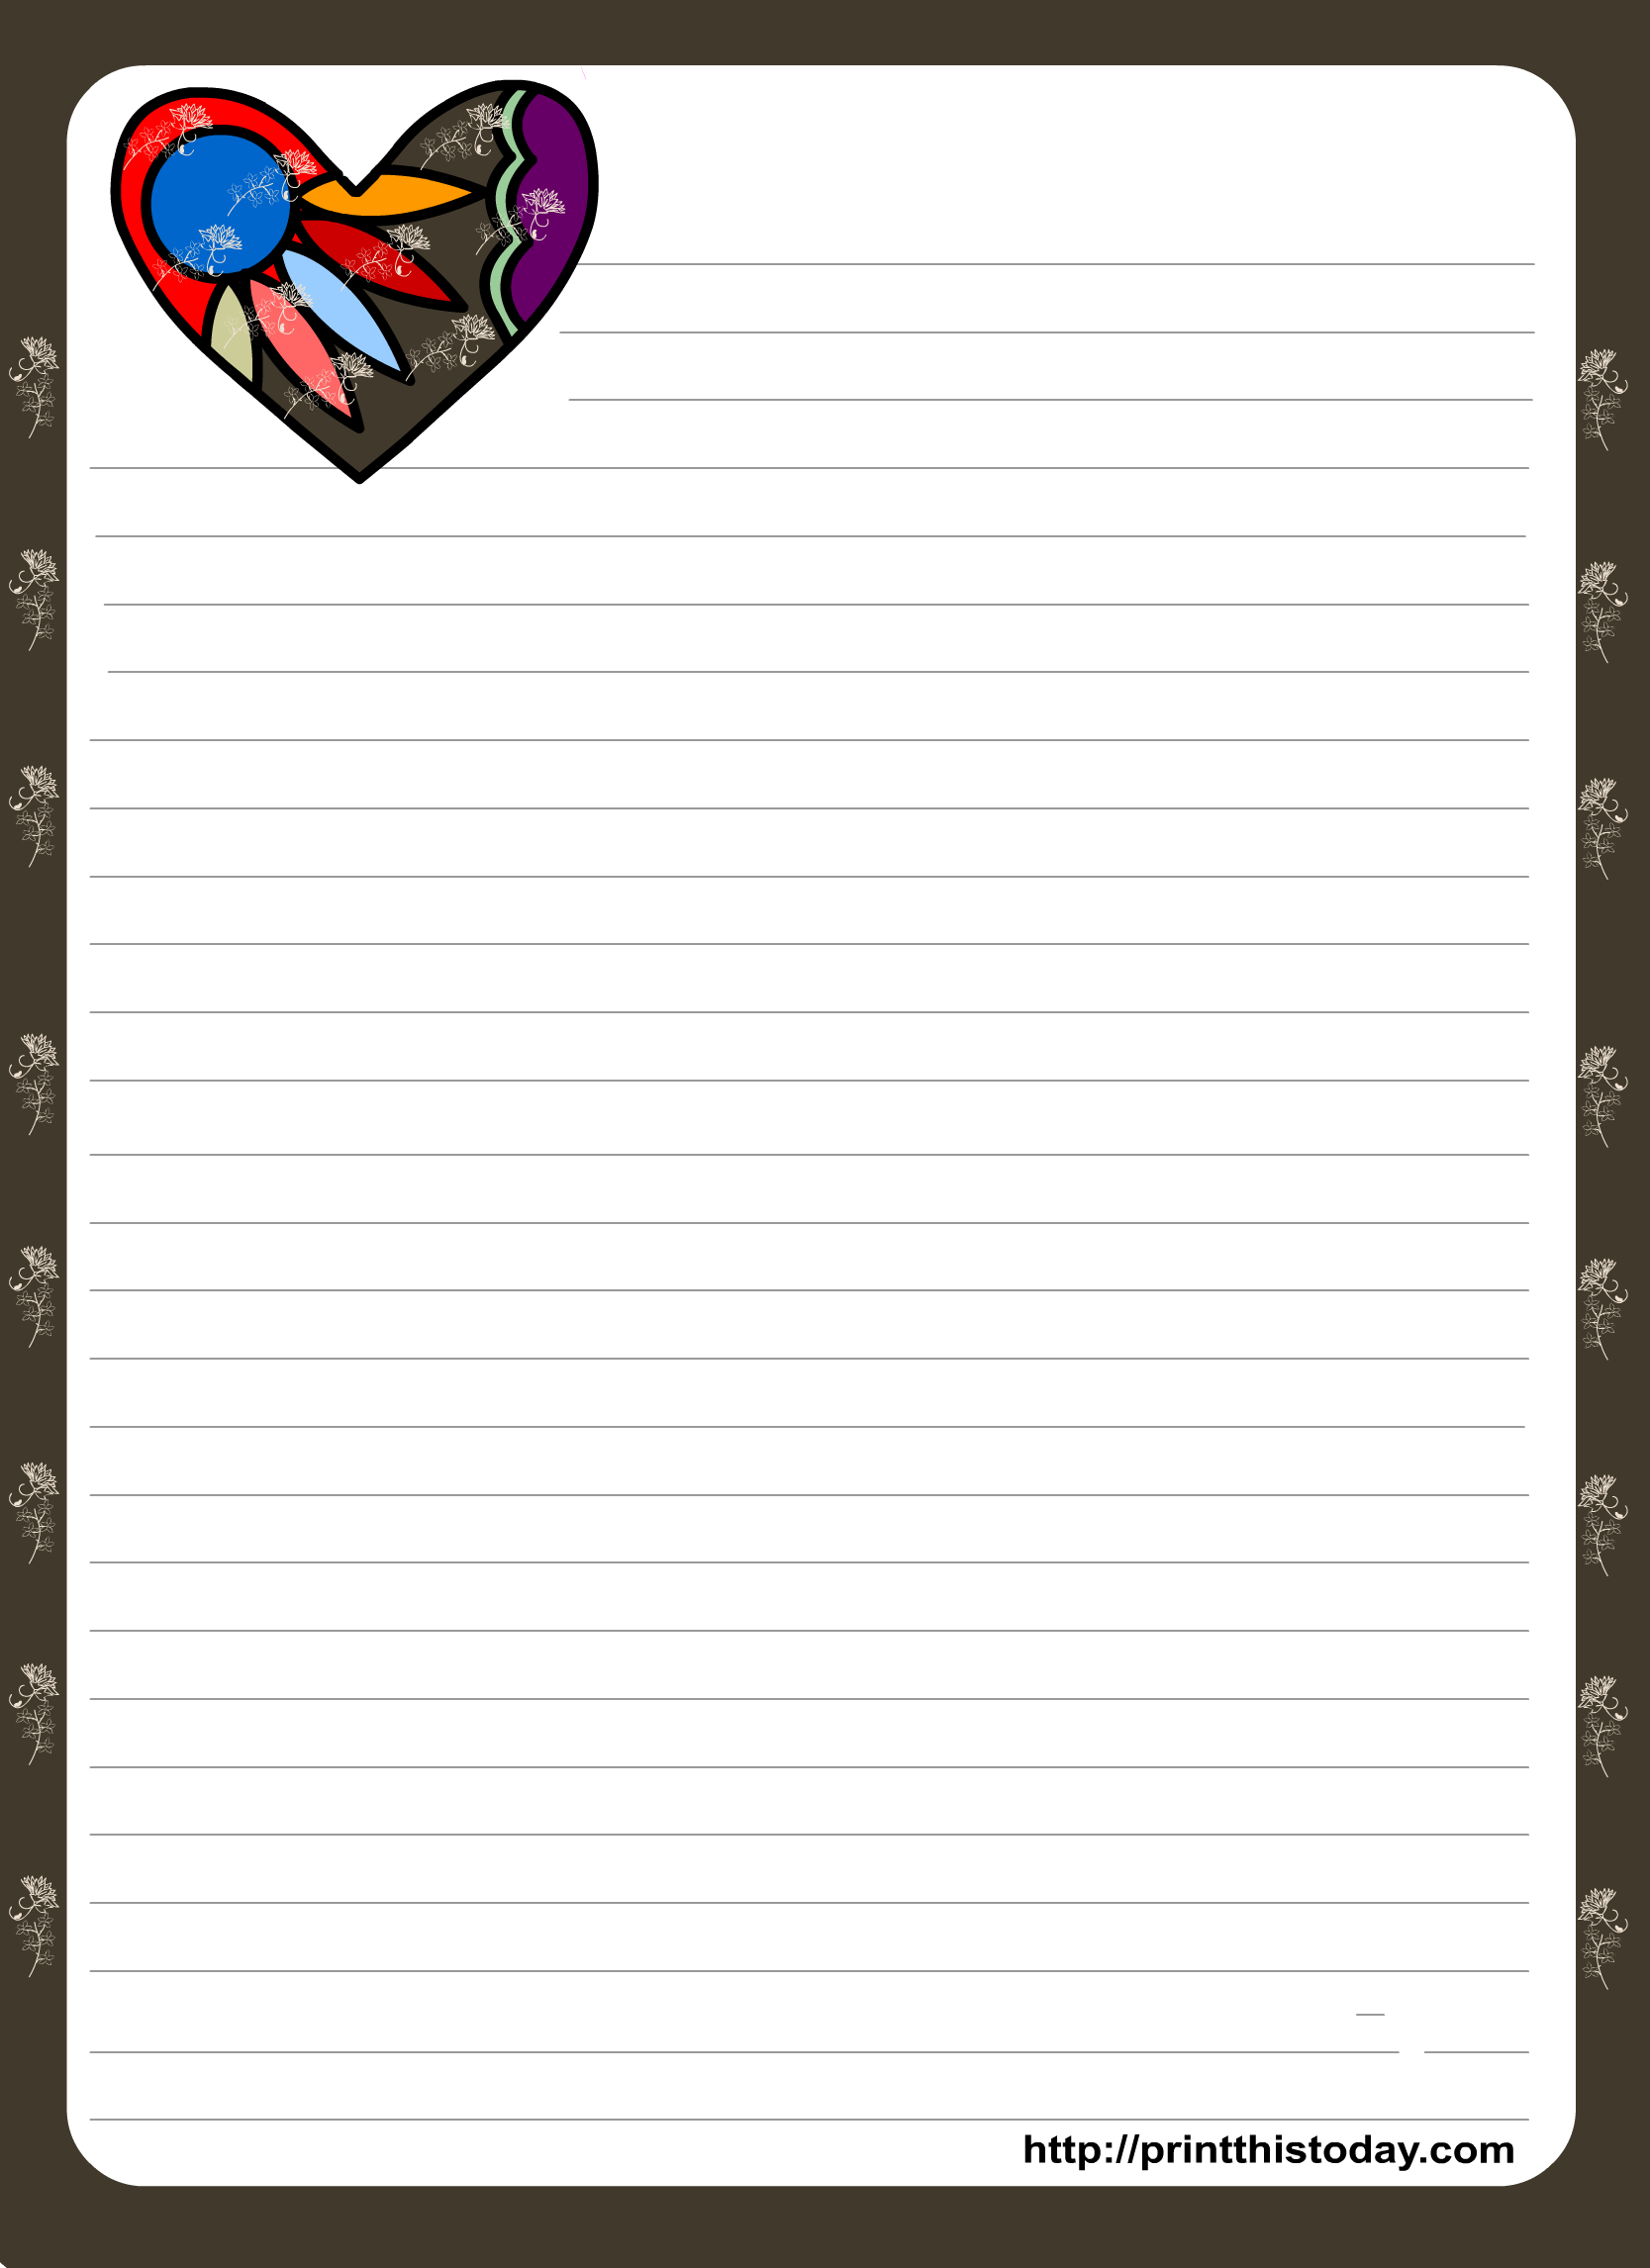 Love Letter Pad Stationery With Colorful Heart | Organization - Free Printable Stationery